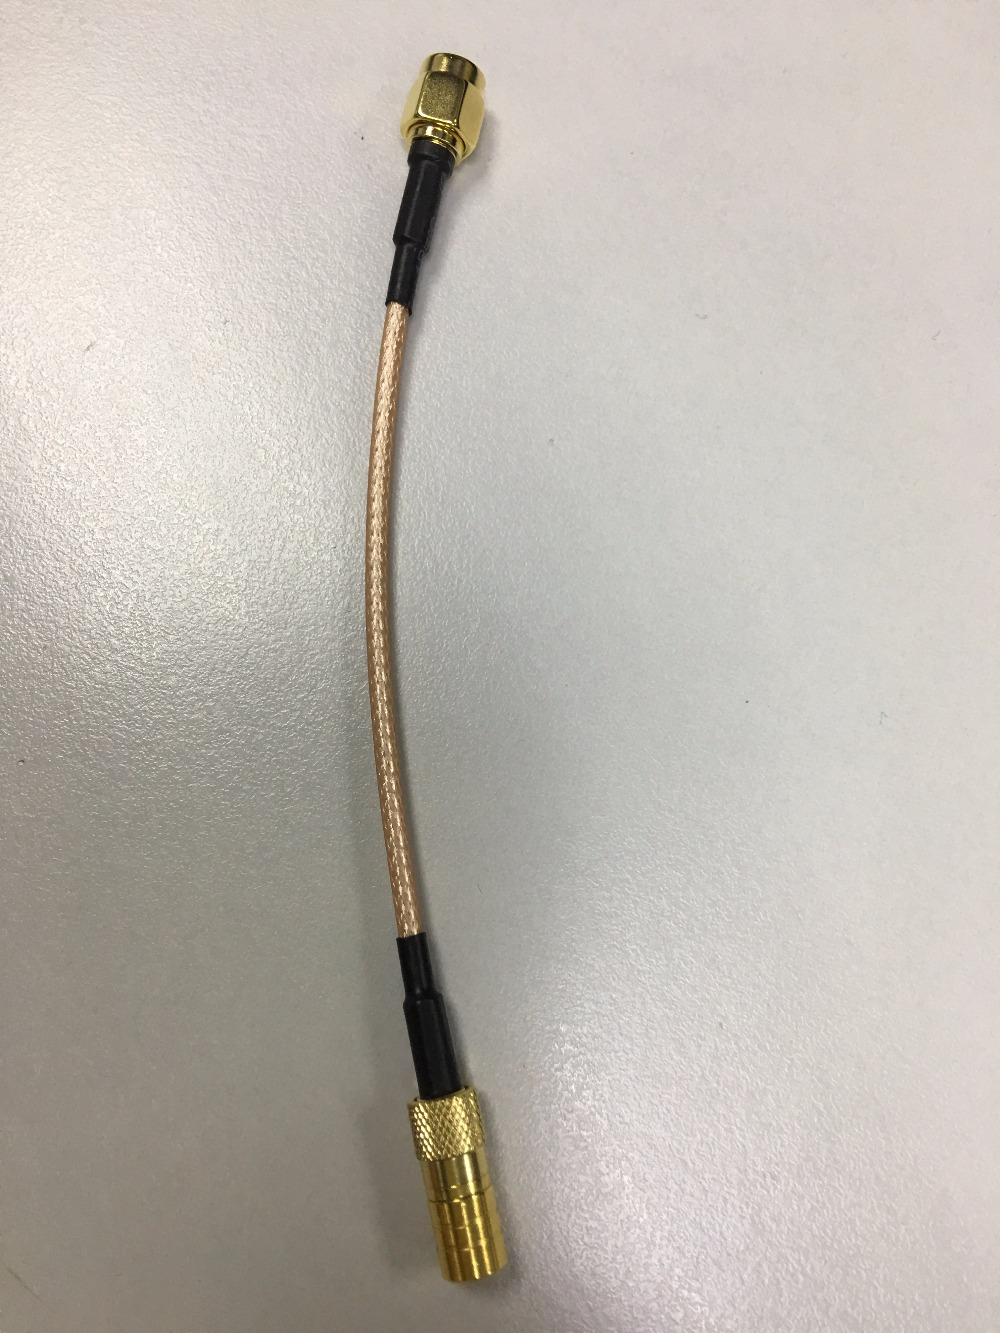 Laser Induction Cable Transformer Wire for Raytools AG laser cutting ...